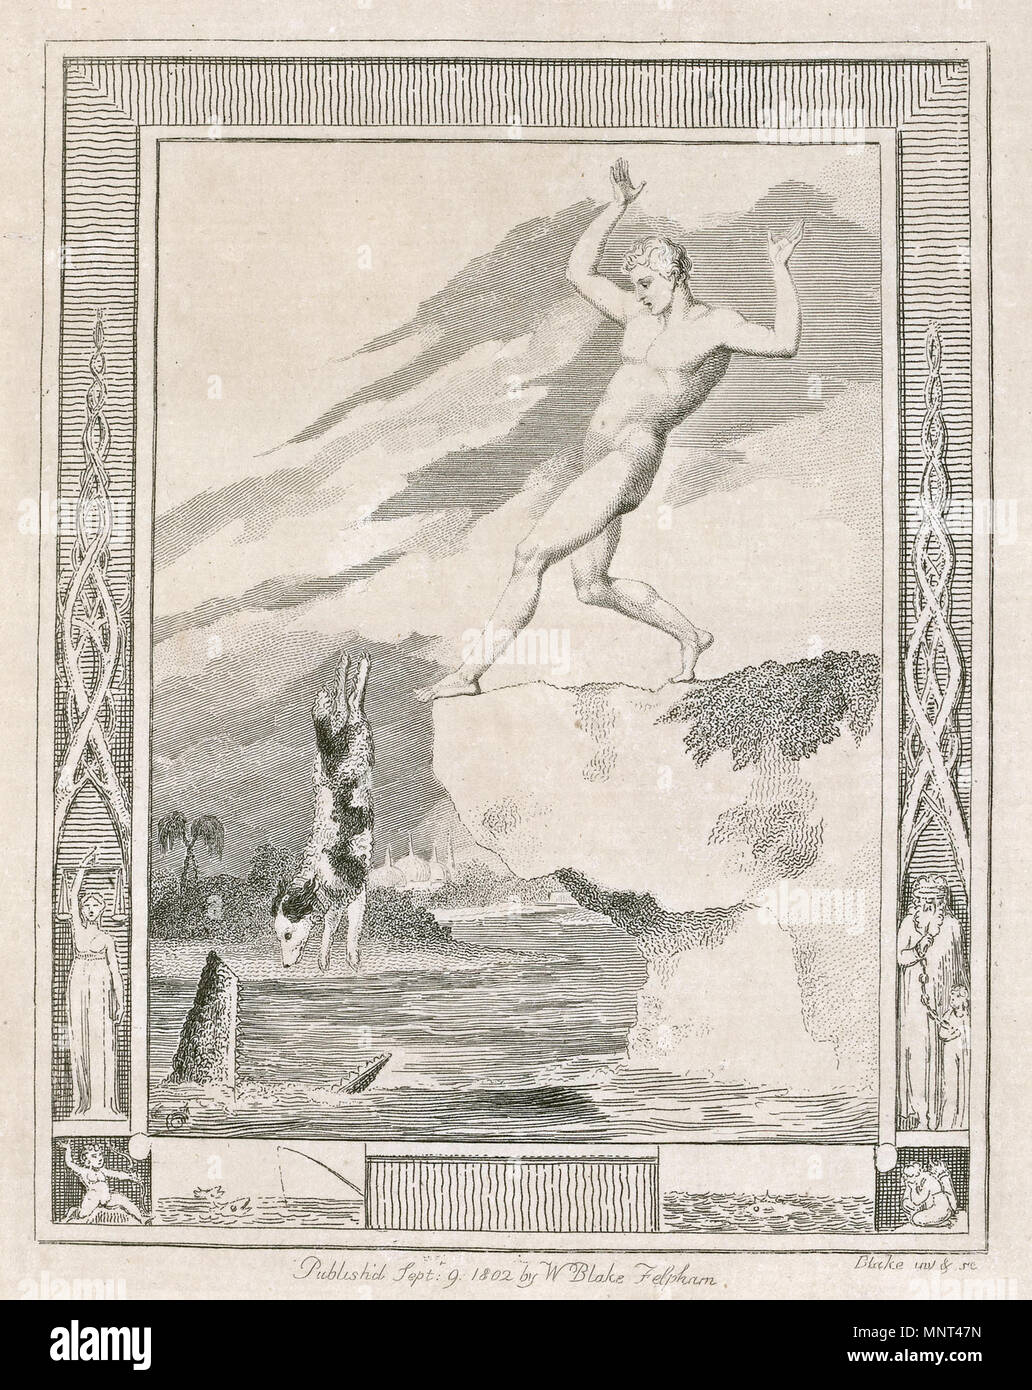 .  English: William Blake for Hayley, Designs to a Series of Ballads, copy 1, object 12 Frontispiece to The Dog, Ballad the Fourth . 1802.    William Blake (1757–1827)   Alternative names W. Blake; Uil'iam Bleik  Description British painter, poet,, writer, theologian, collector and engraver  Date of birth/death 28 November 1757 12 August 1827  Location of birth/death Broadwick Street Charing Cross  Work location London  Authority control  : Q41513 VIAF:54144439 ISNI:0000 0001 2096 135X ULAN:500012489 LCCN:n78095331 NLA:35019221 WorldCat 1263 William Blake for Hayley, Designs to a Ser - Stock Image